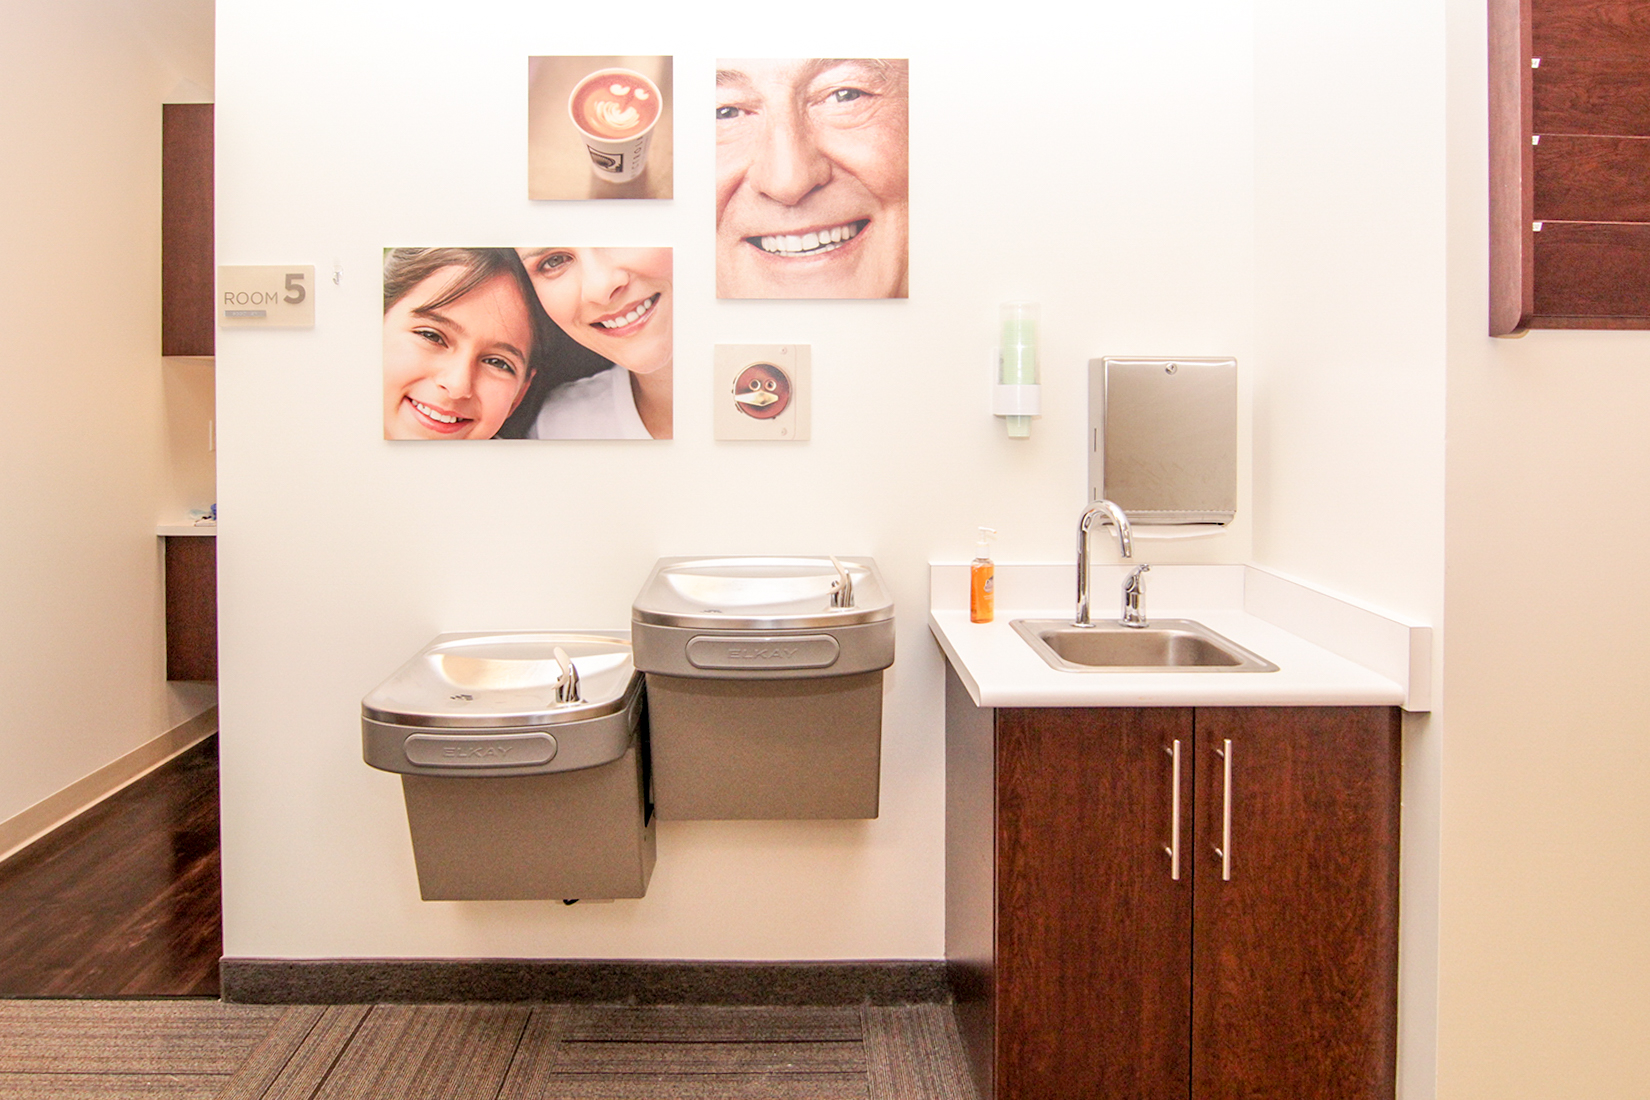 Donelson Smiles Dentistry image 6